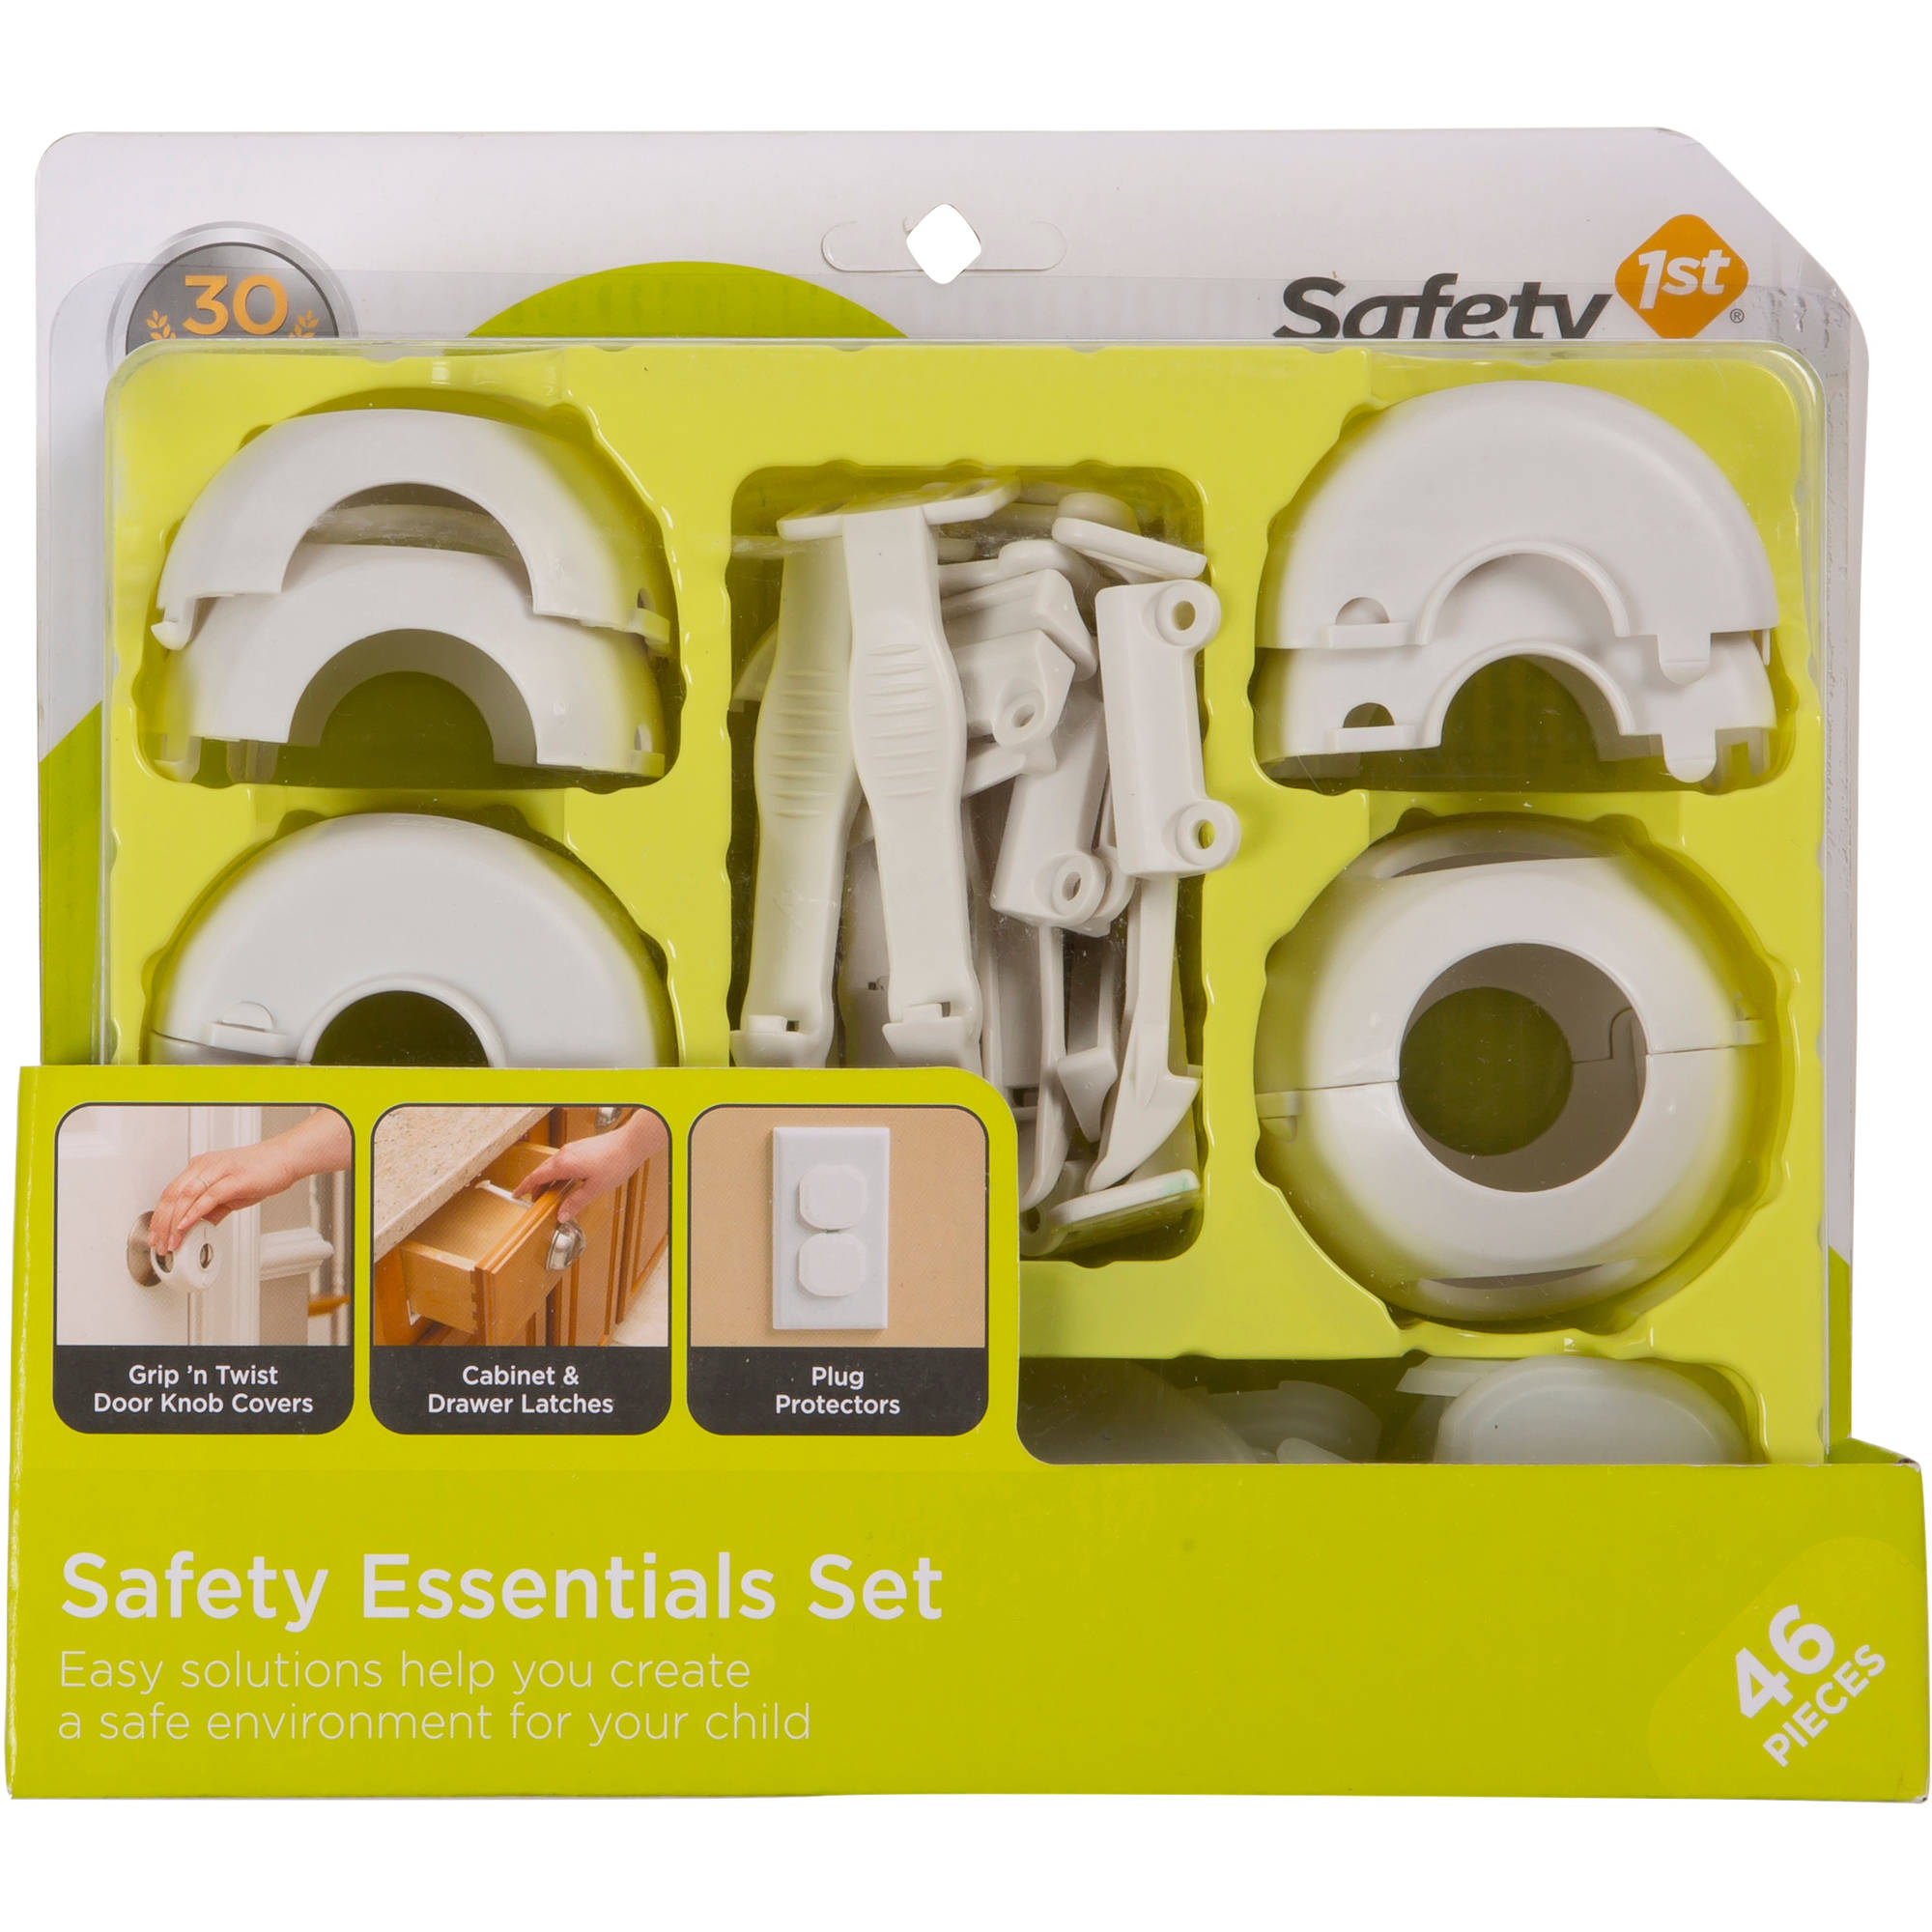 Safety 1st Safety Essentials Kit, 46 Pieces